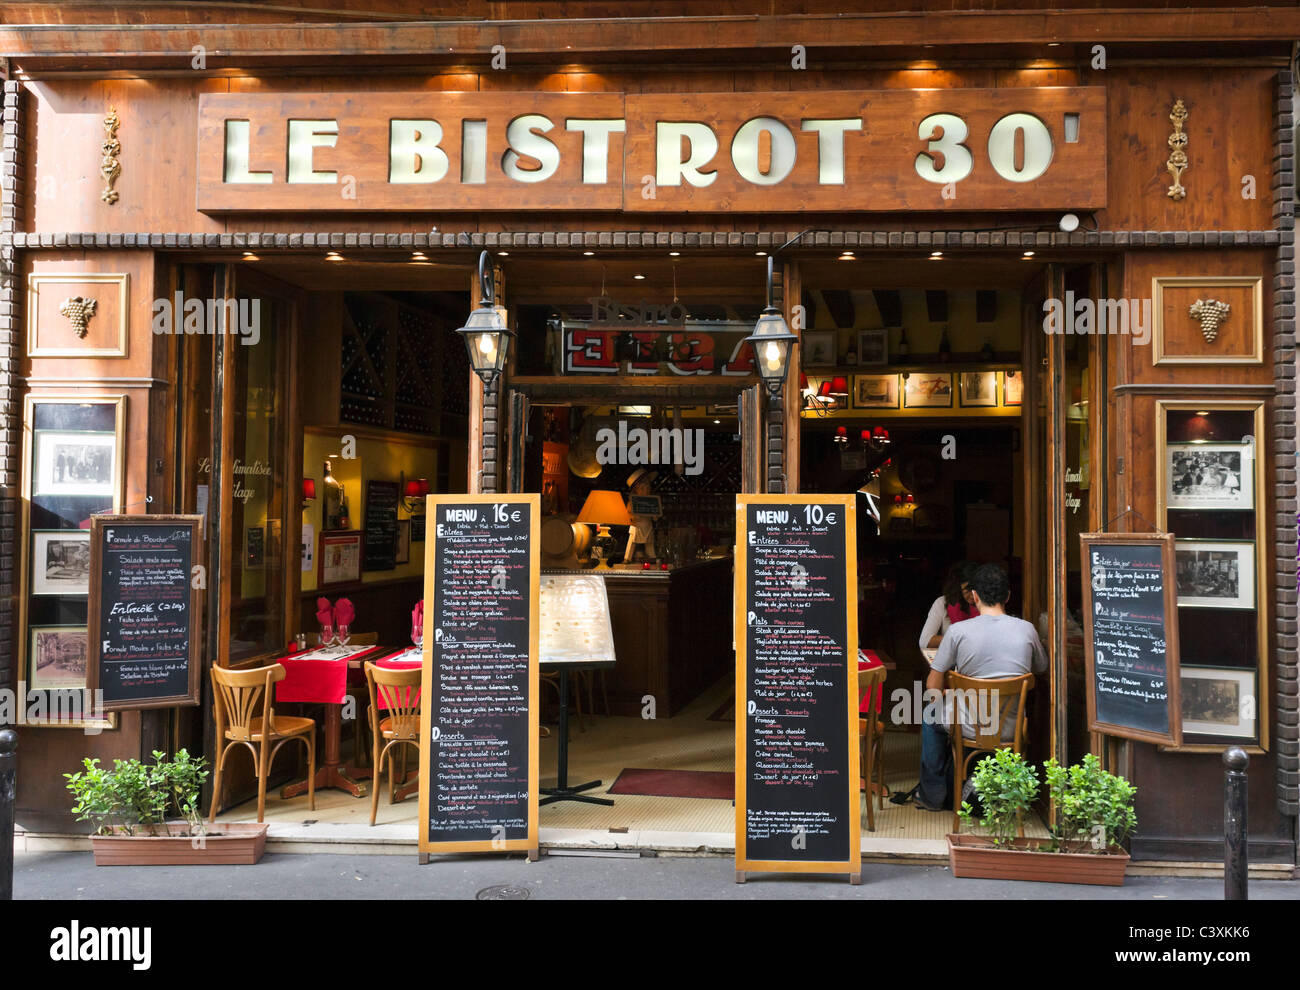 Bistrot on Rue St Severin just off the Boulevard St Michel, Latin Quarter, Paris, France - Stock Image